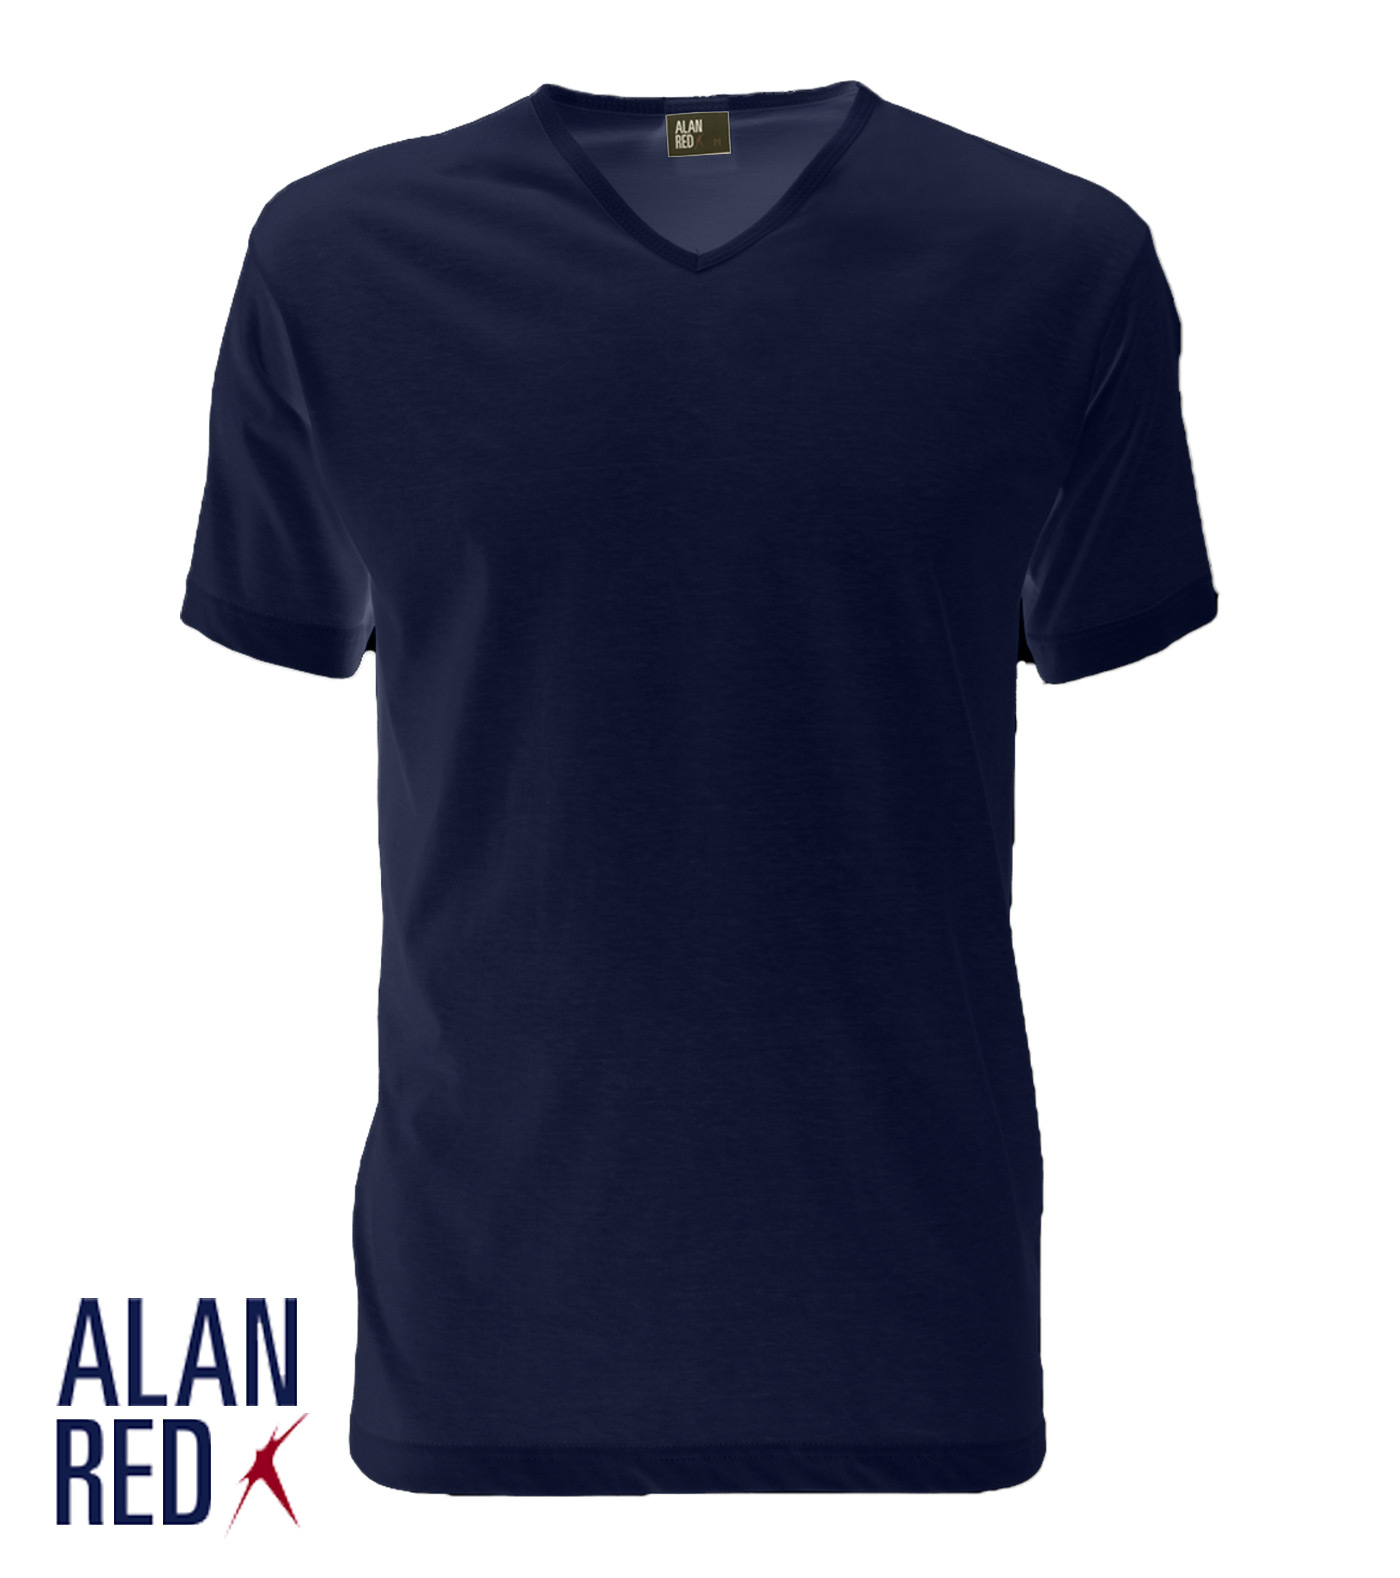 Alan Red Vermont - navy 1-pack